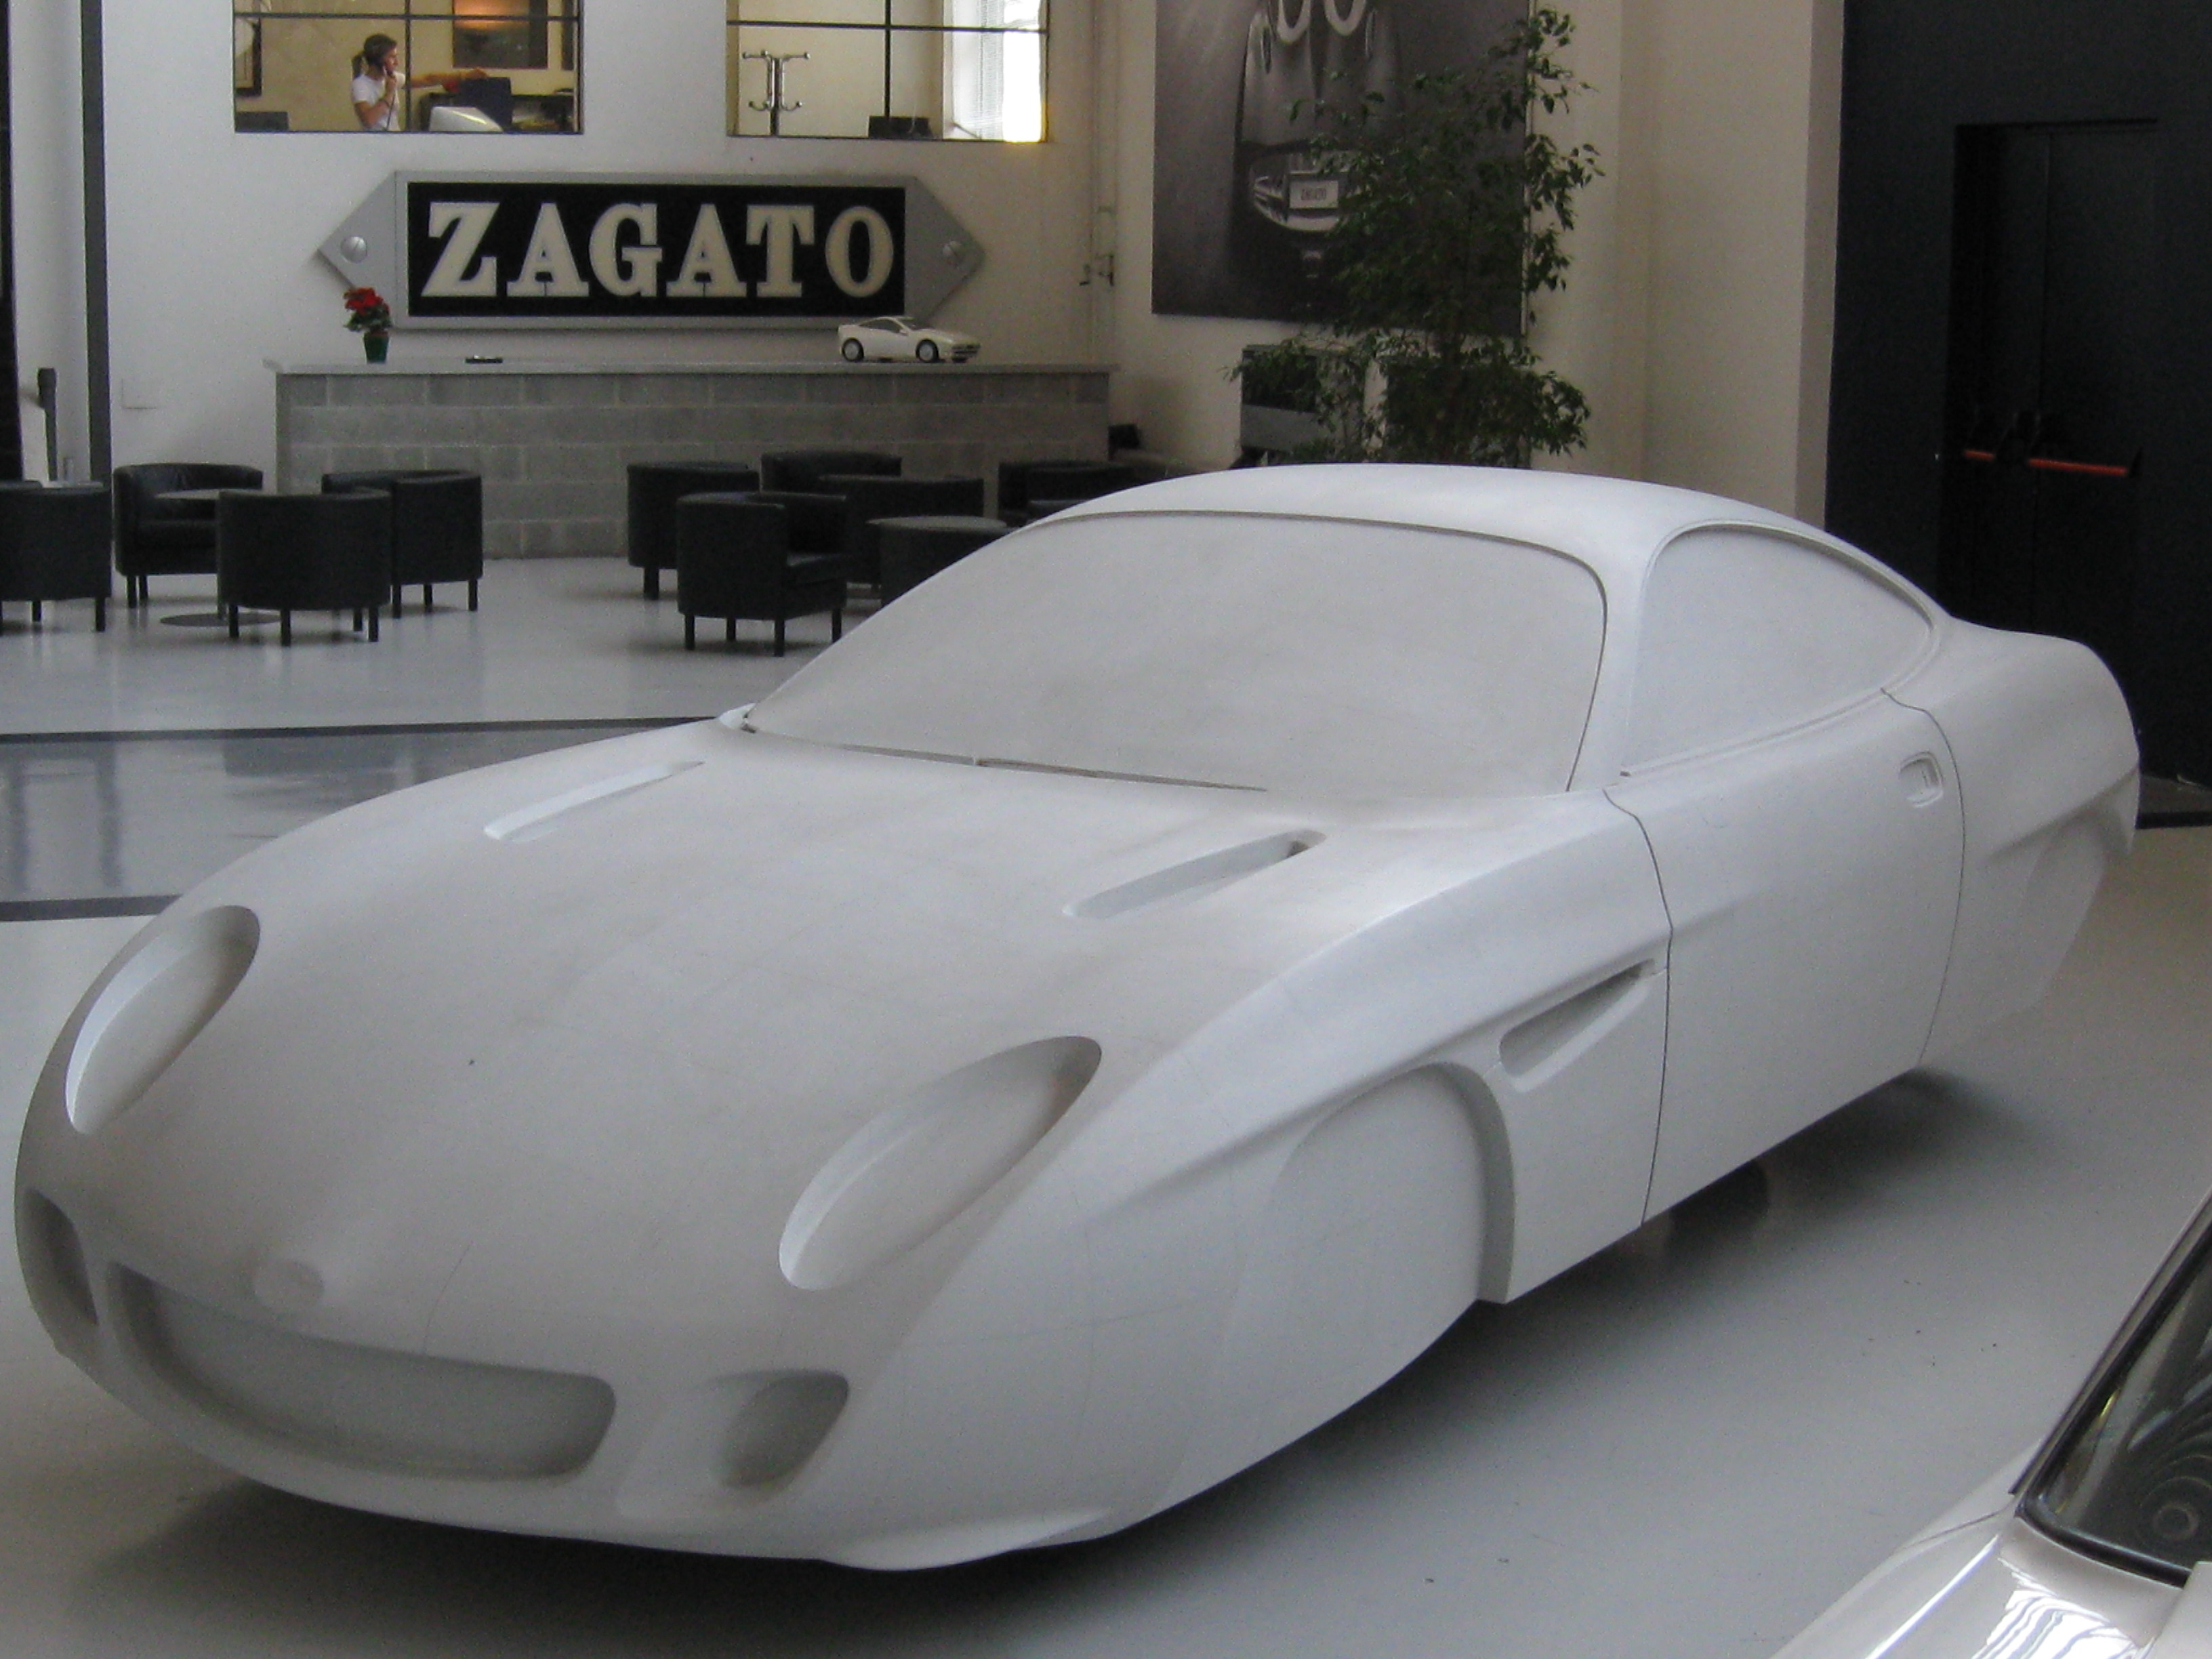 Zagato Chief Design The Zagato Design Studio